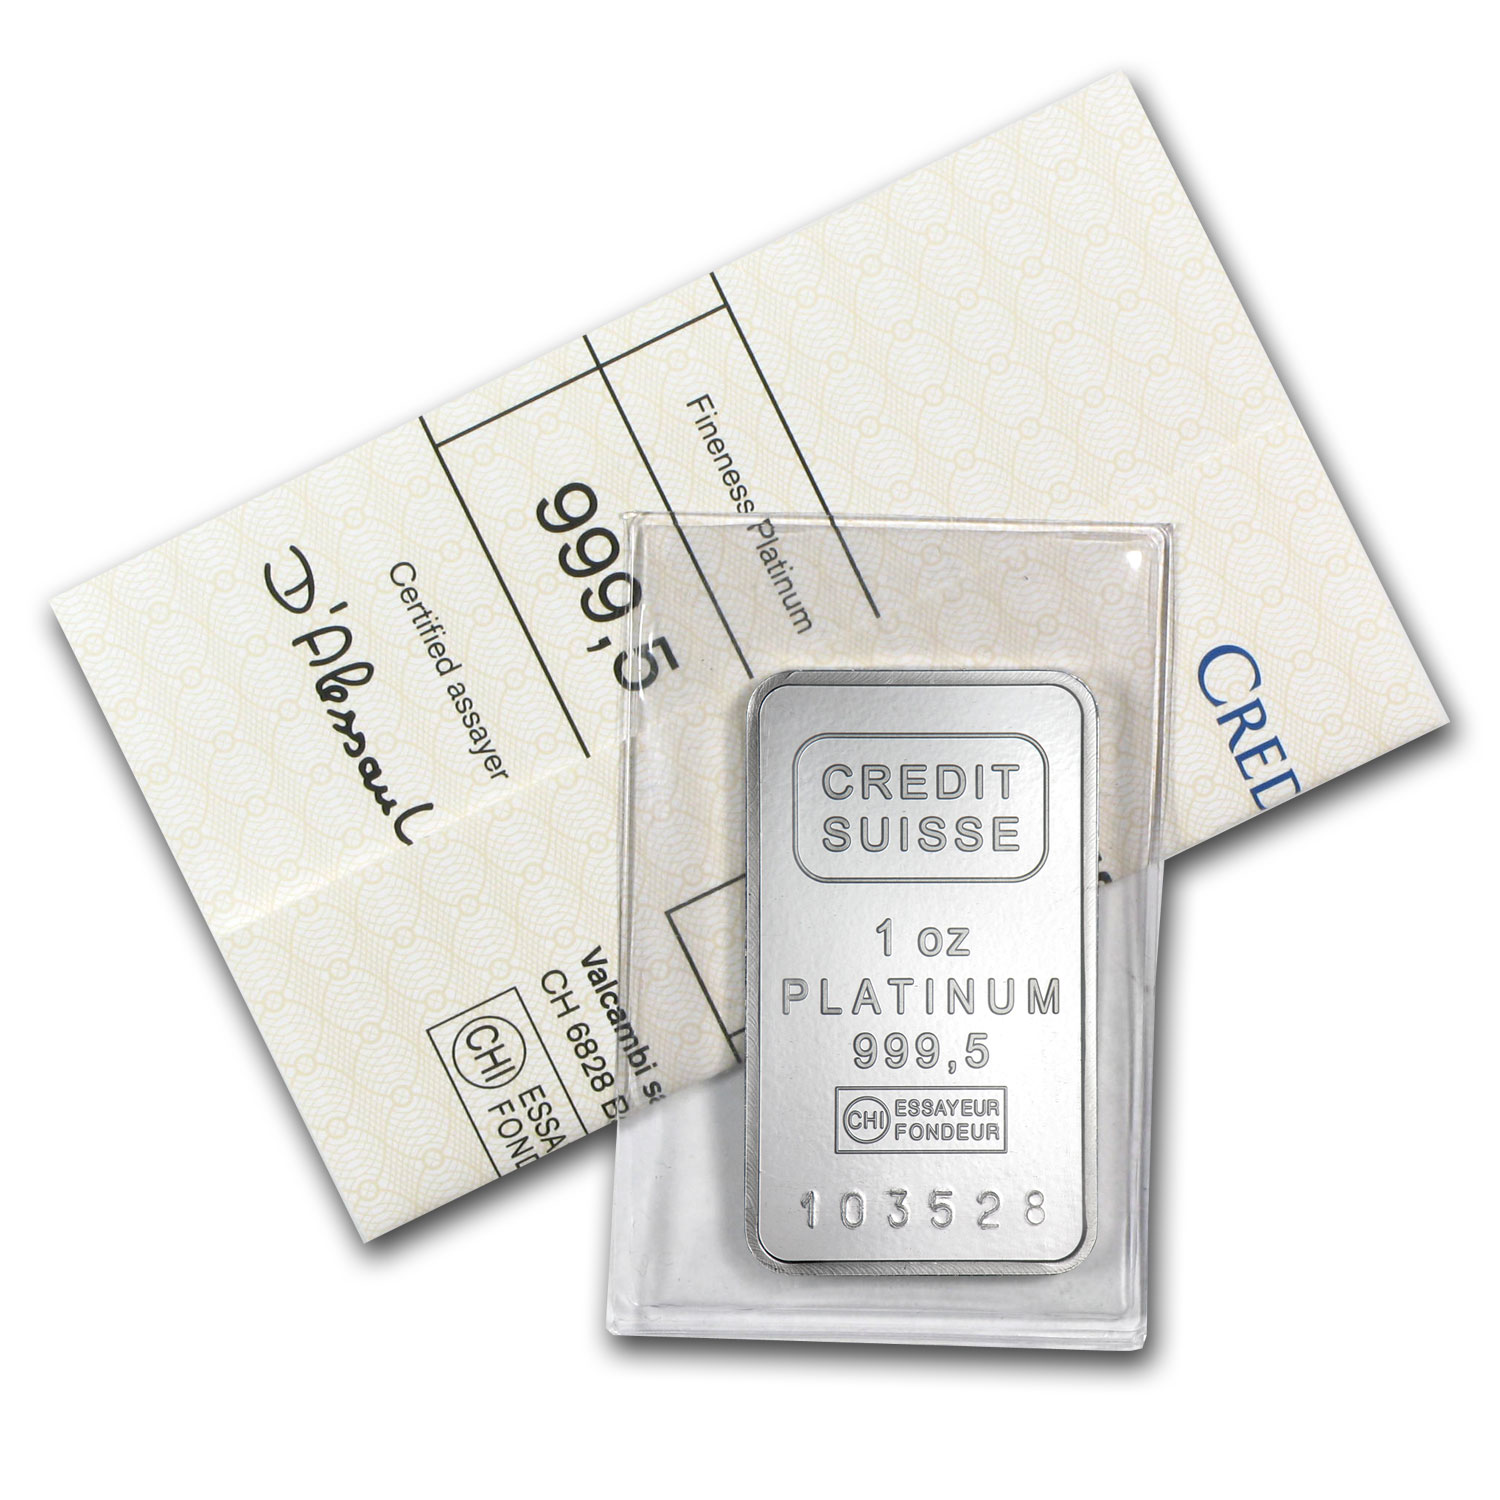 1 oz Credit Suisse Platinum Bar (W/Assay) .999+ Fine